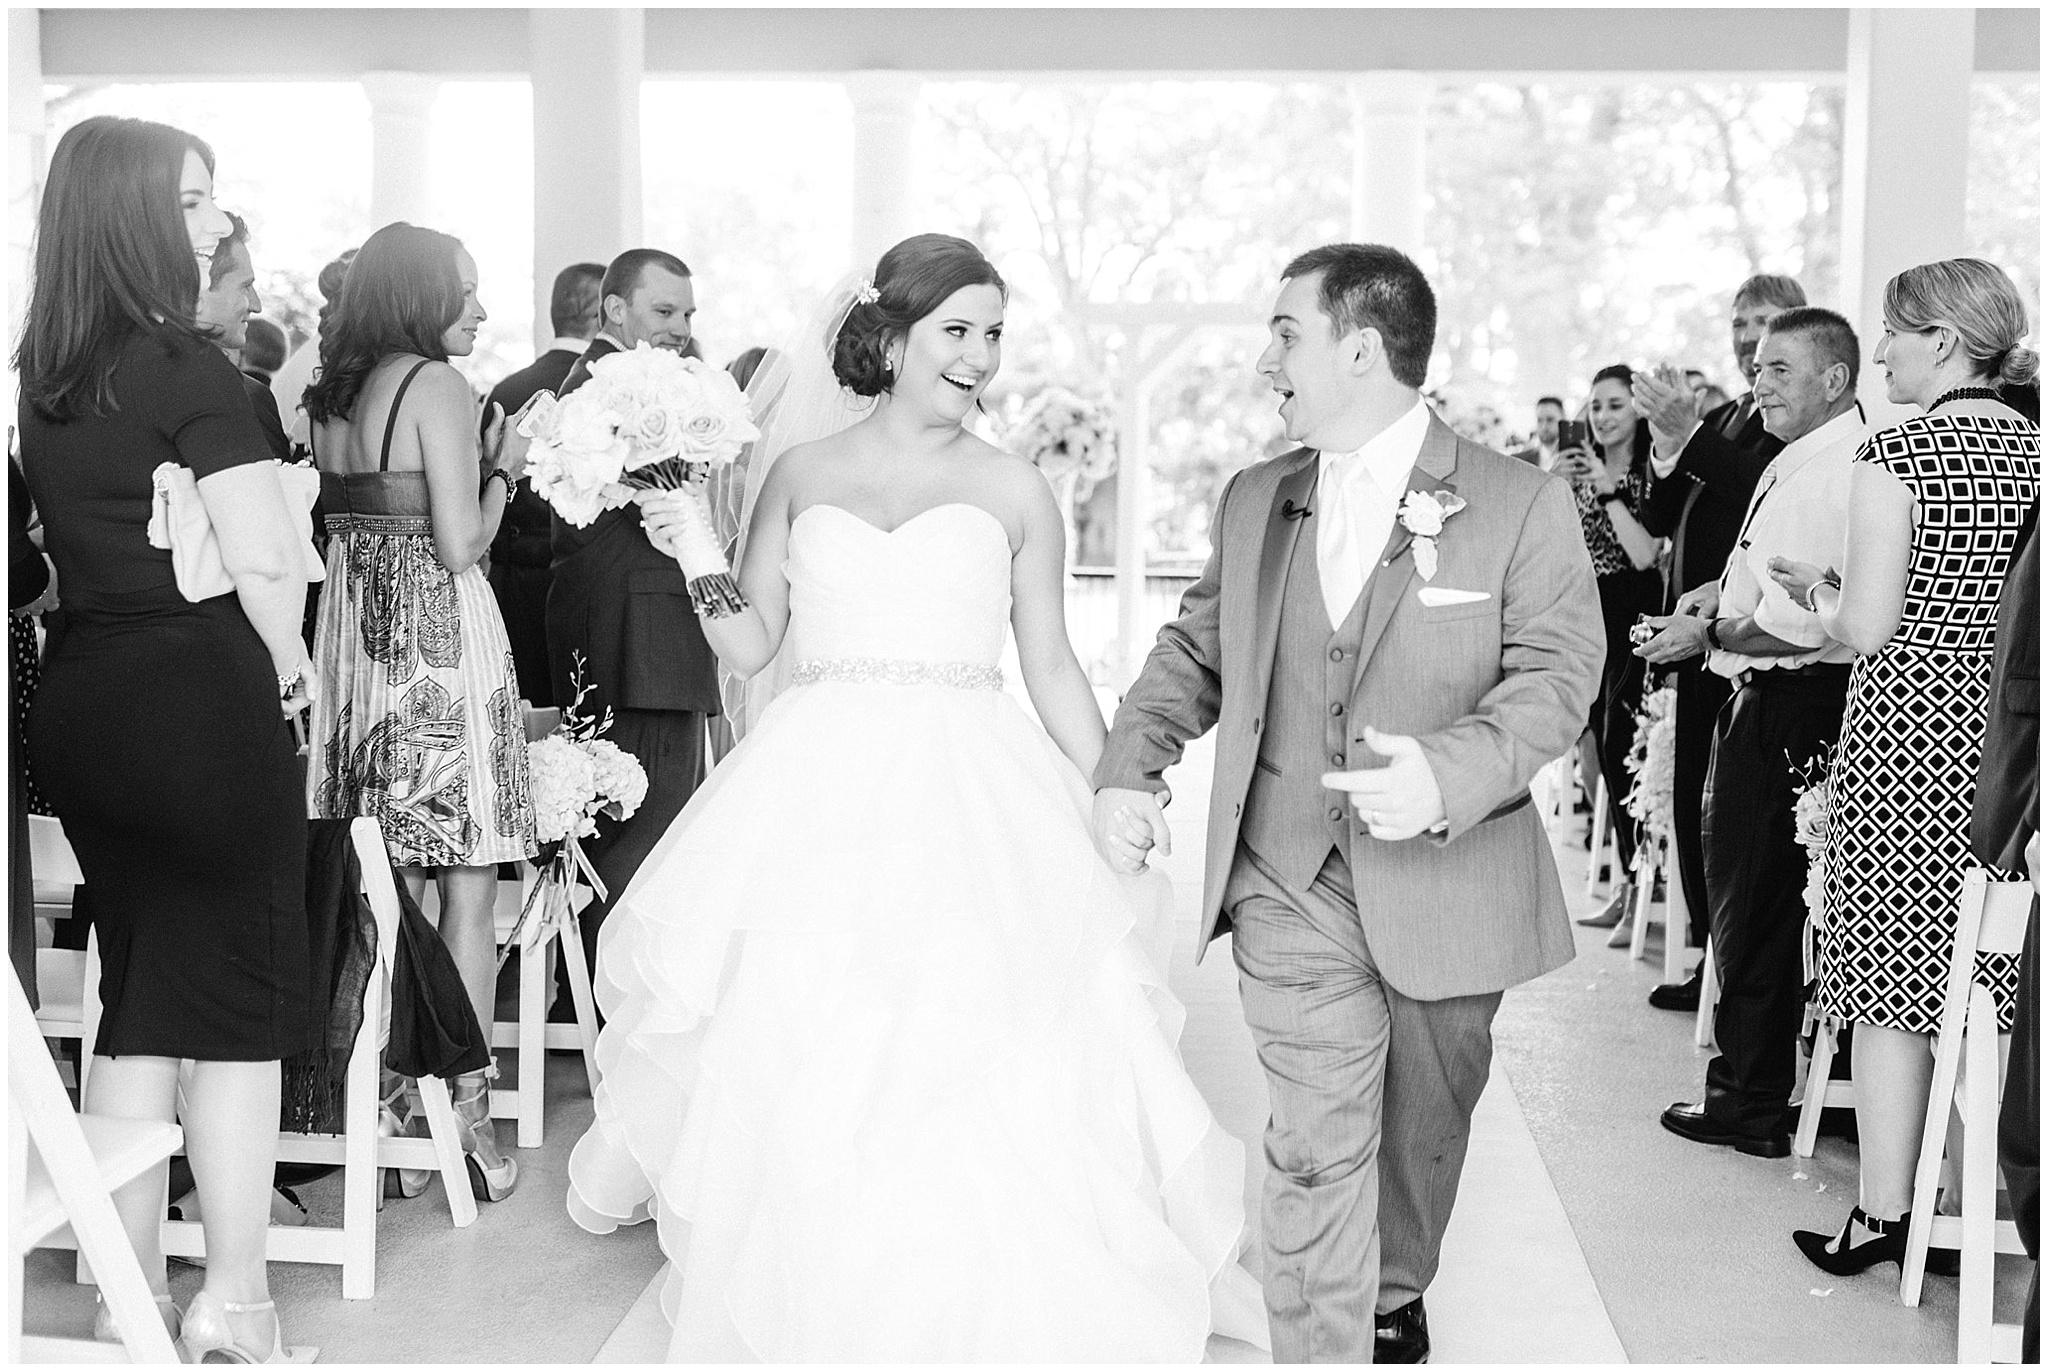 Wedding ceremony at LaSalle Banquet Centre by Jenn Kavanagh Photography